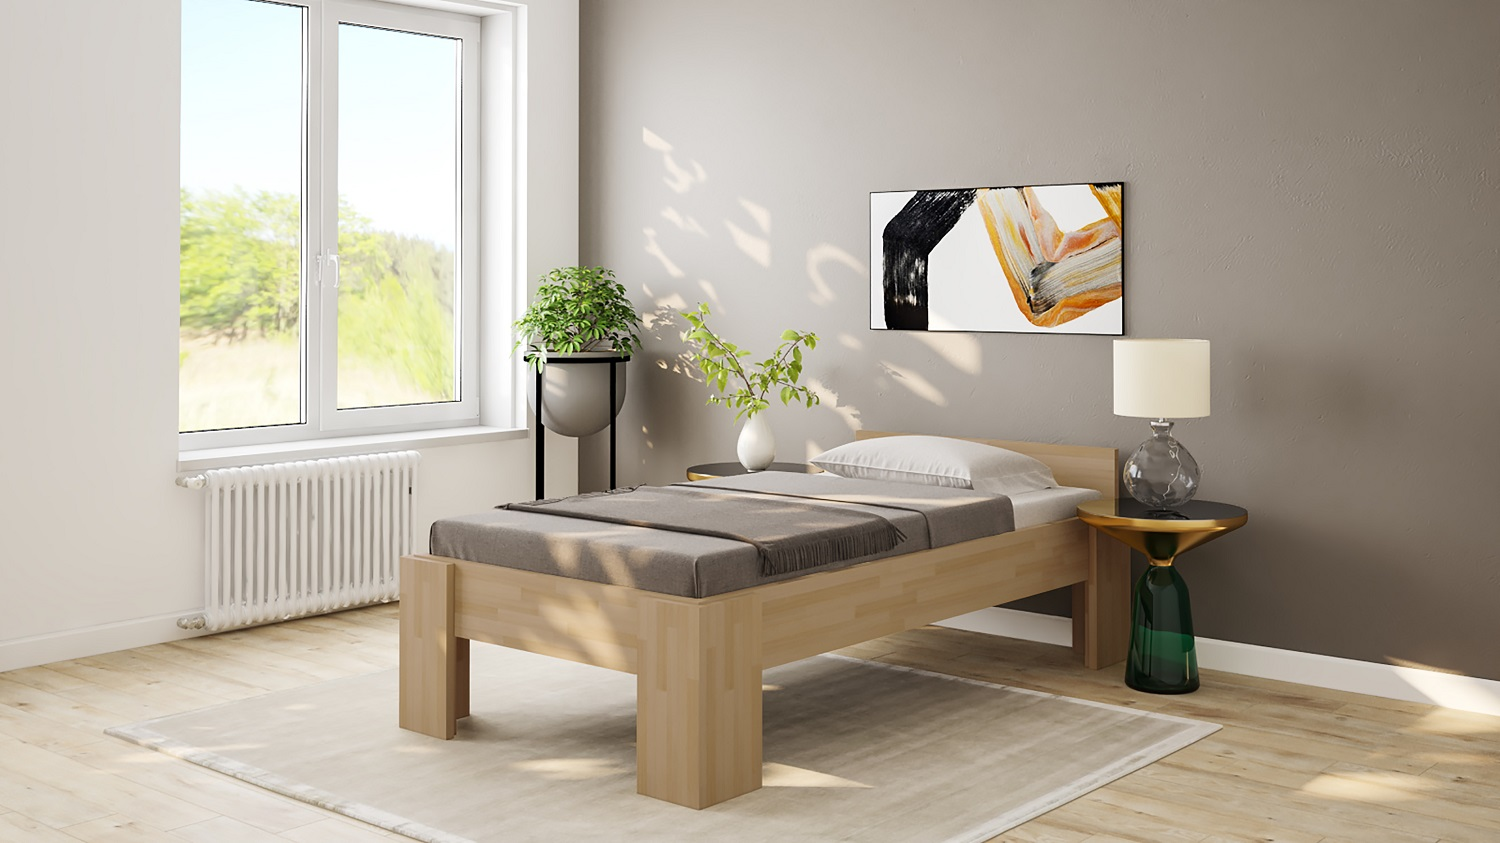 massivholzbett eiche doppelbett fuss i 140cm 200cm. Black Bedroom Furniture Sets. Home Design Ideas